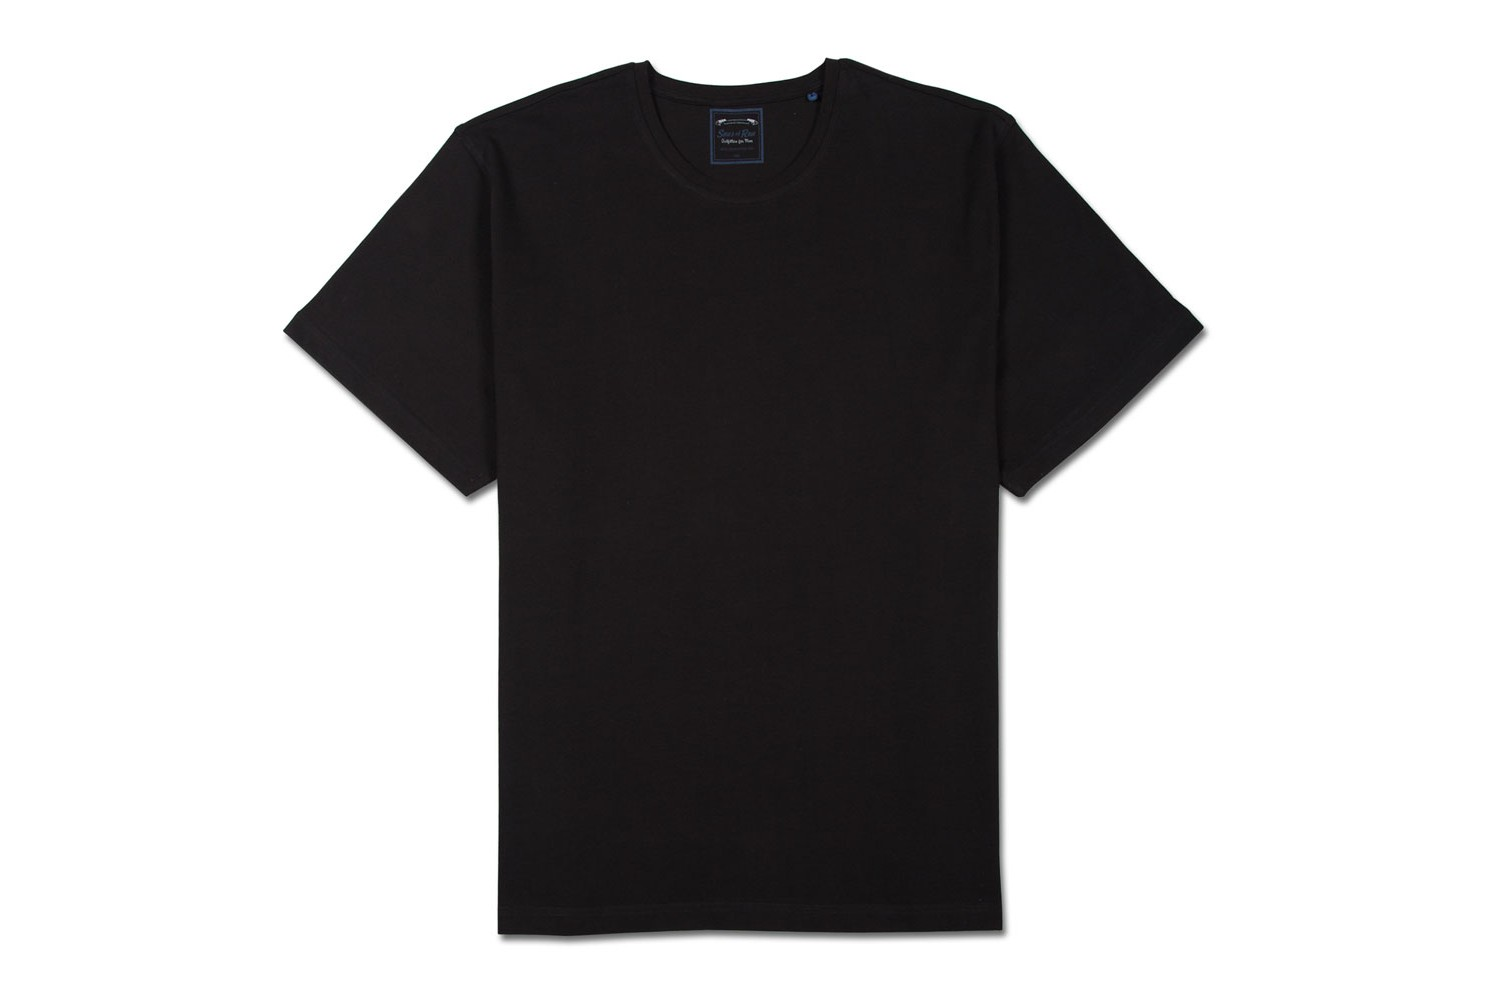 black shirts ideas of black shirt black t shirt USQLFPX